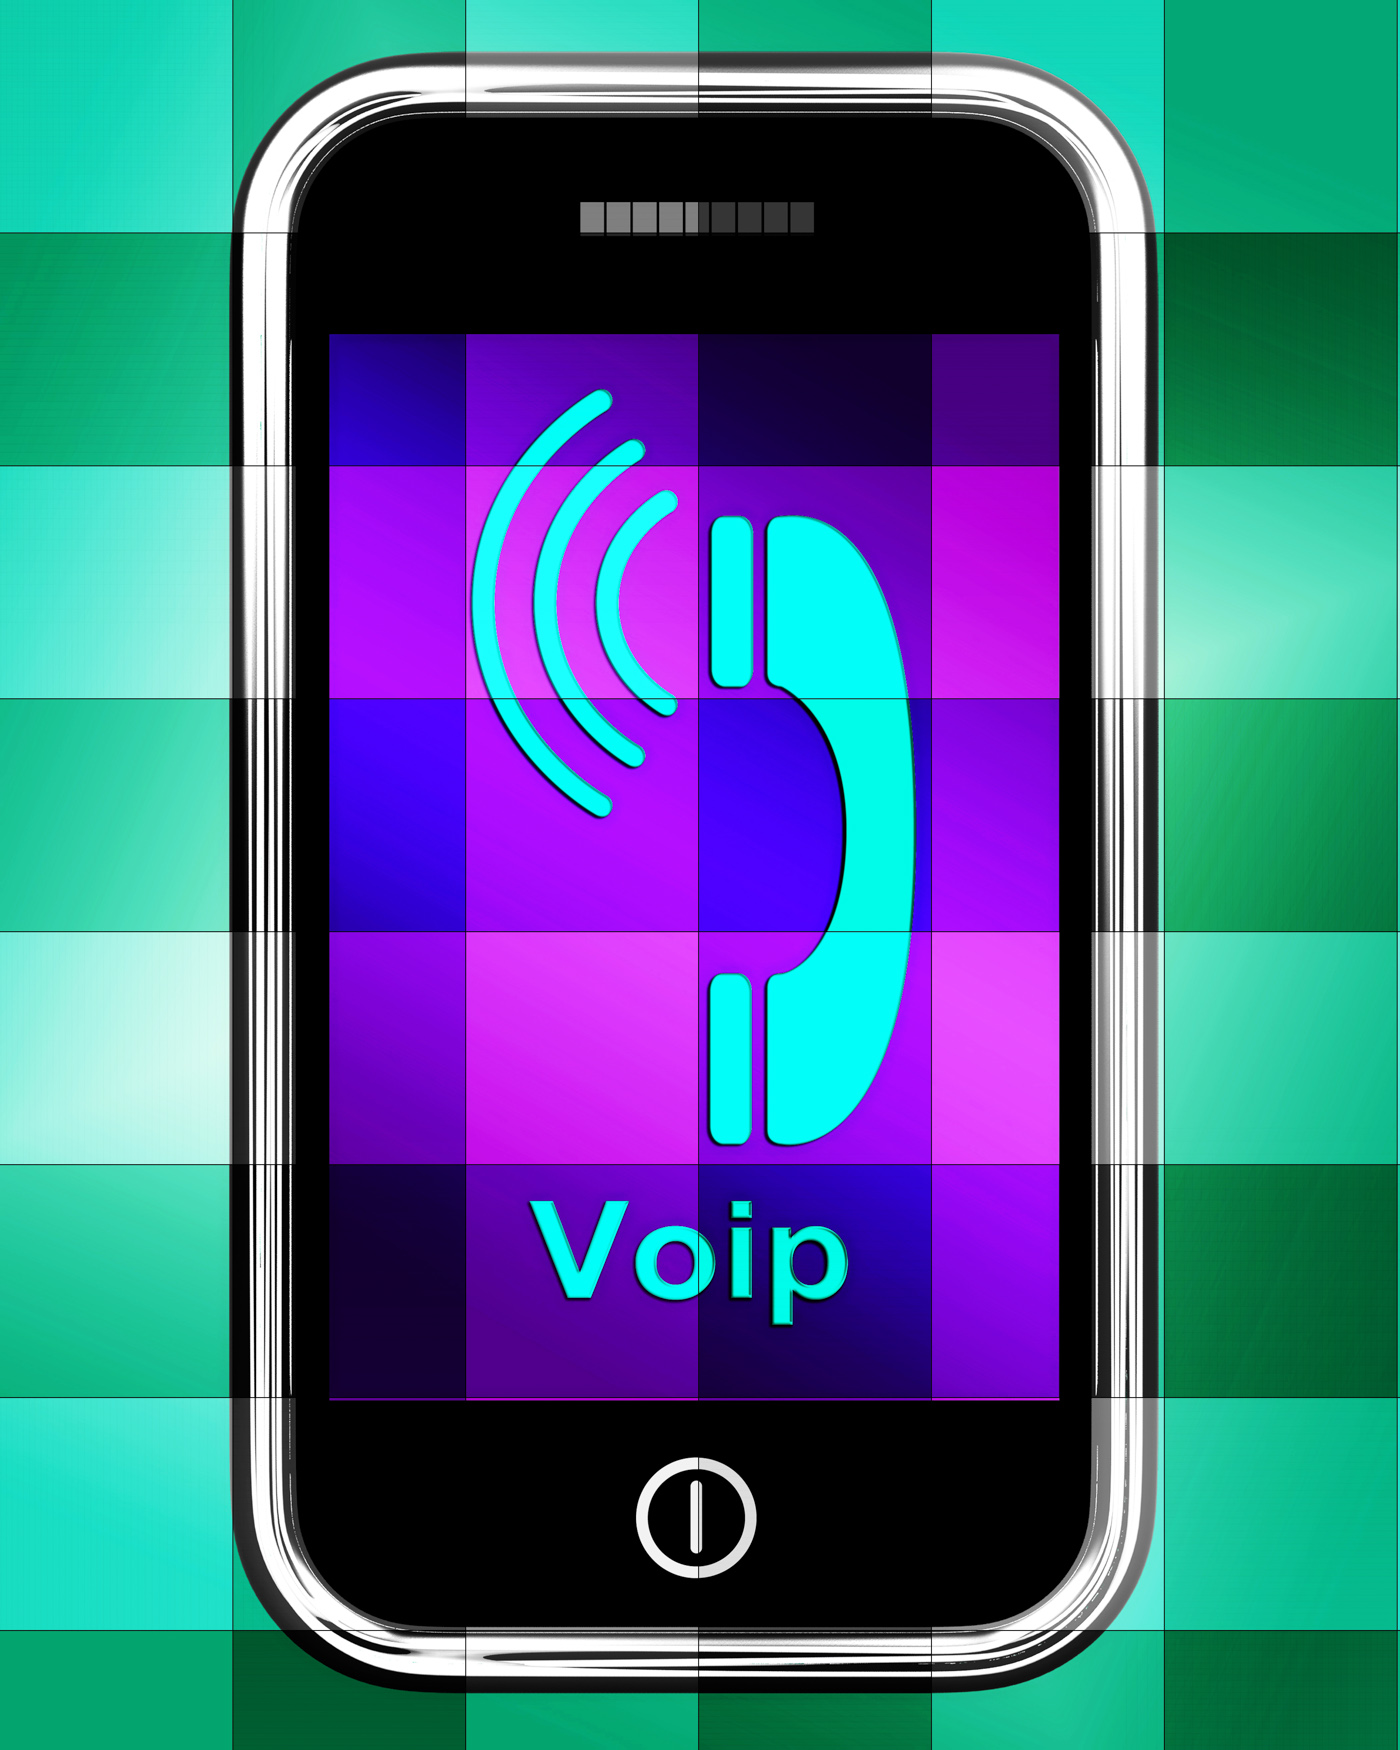 Voip on phone displays voice over internet protocol or ip telephony photo